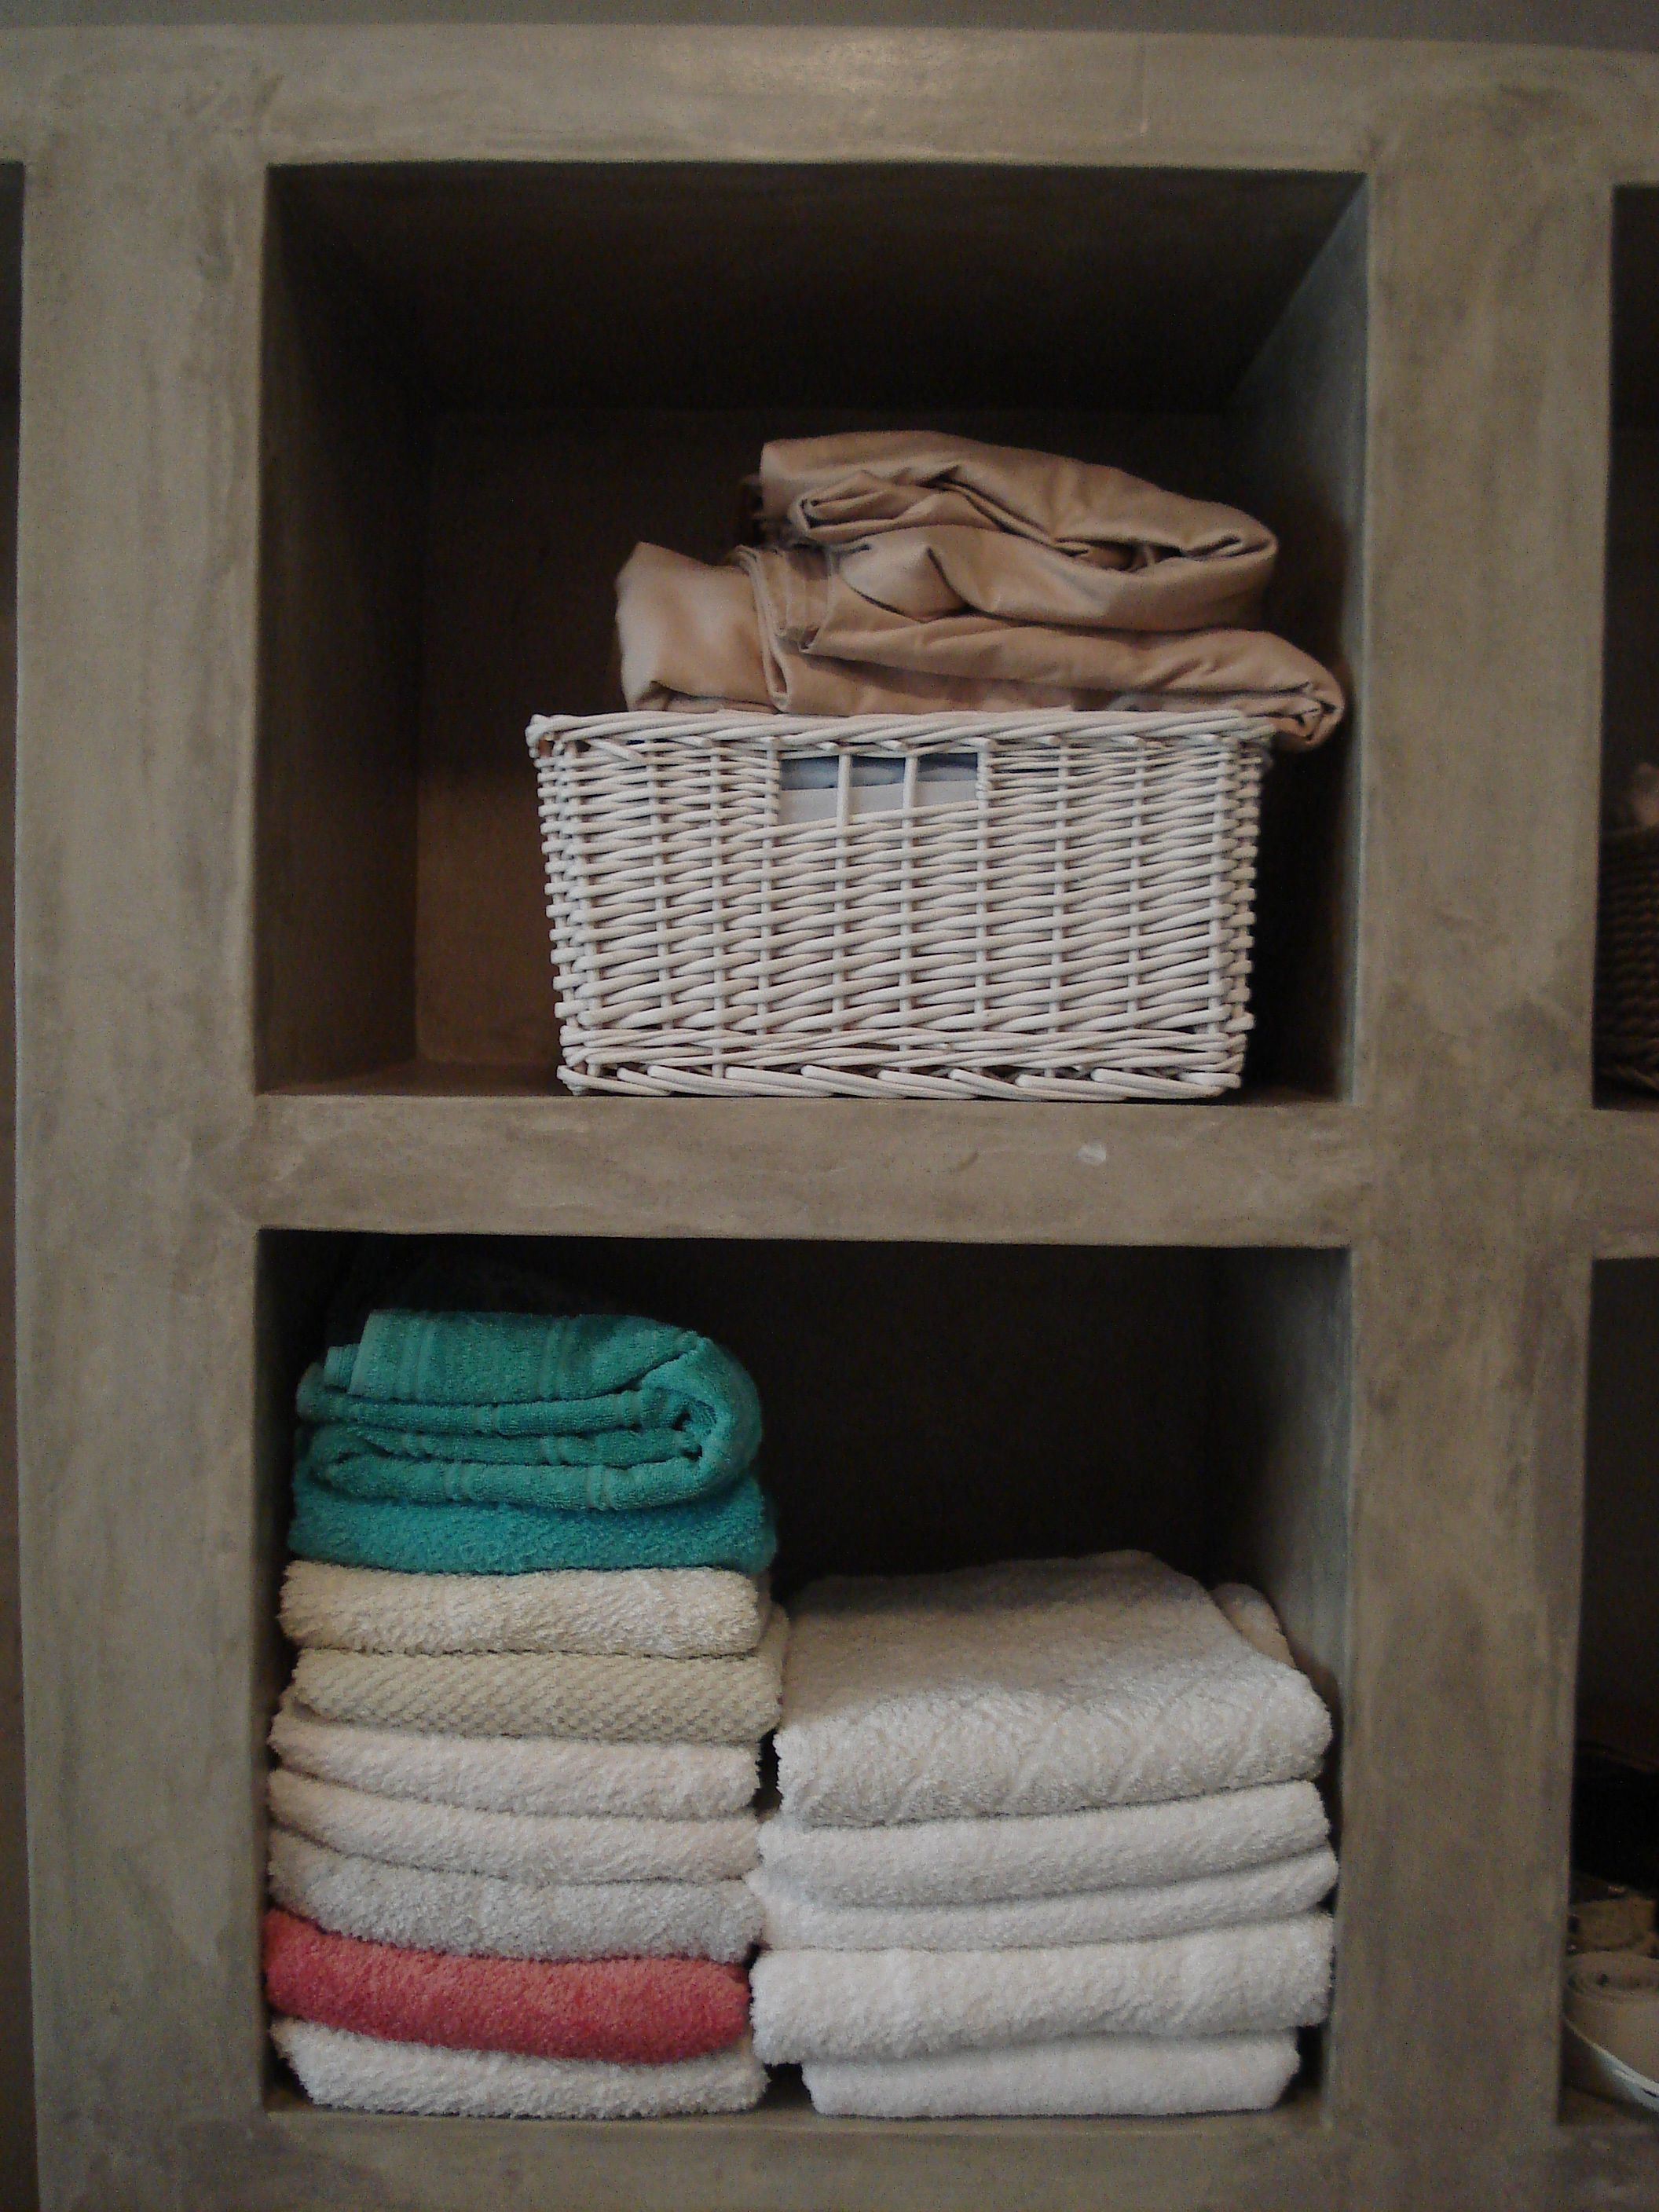 Pin By Cemtech On Cemtech Cement Finishes Cabin Bathroom Decor Concrete Bedroom Laundry Room Decor